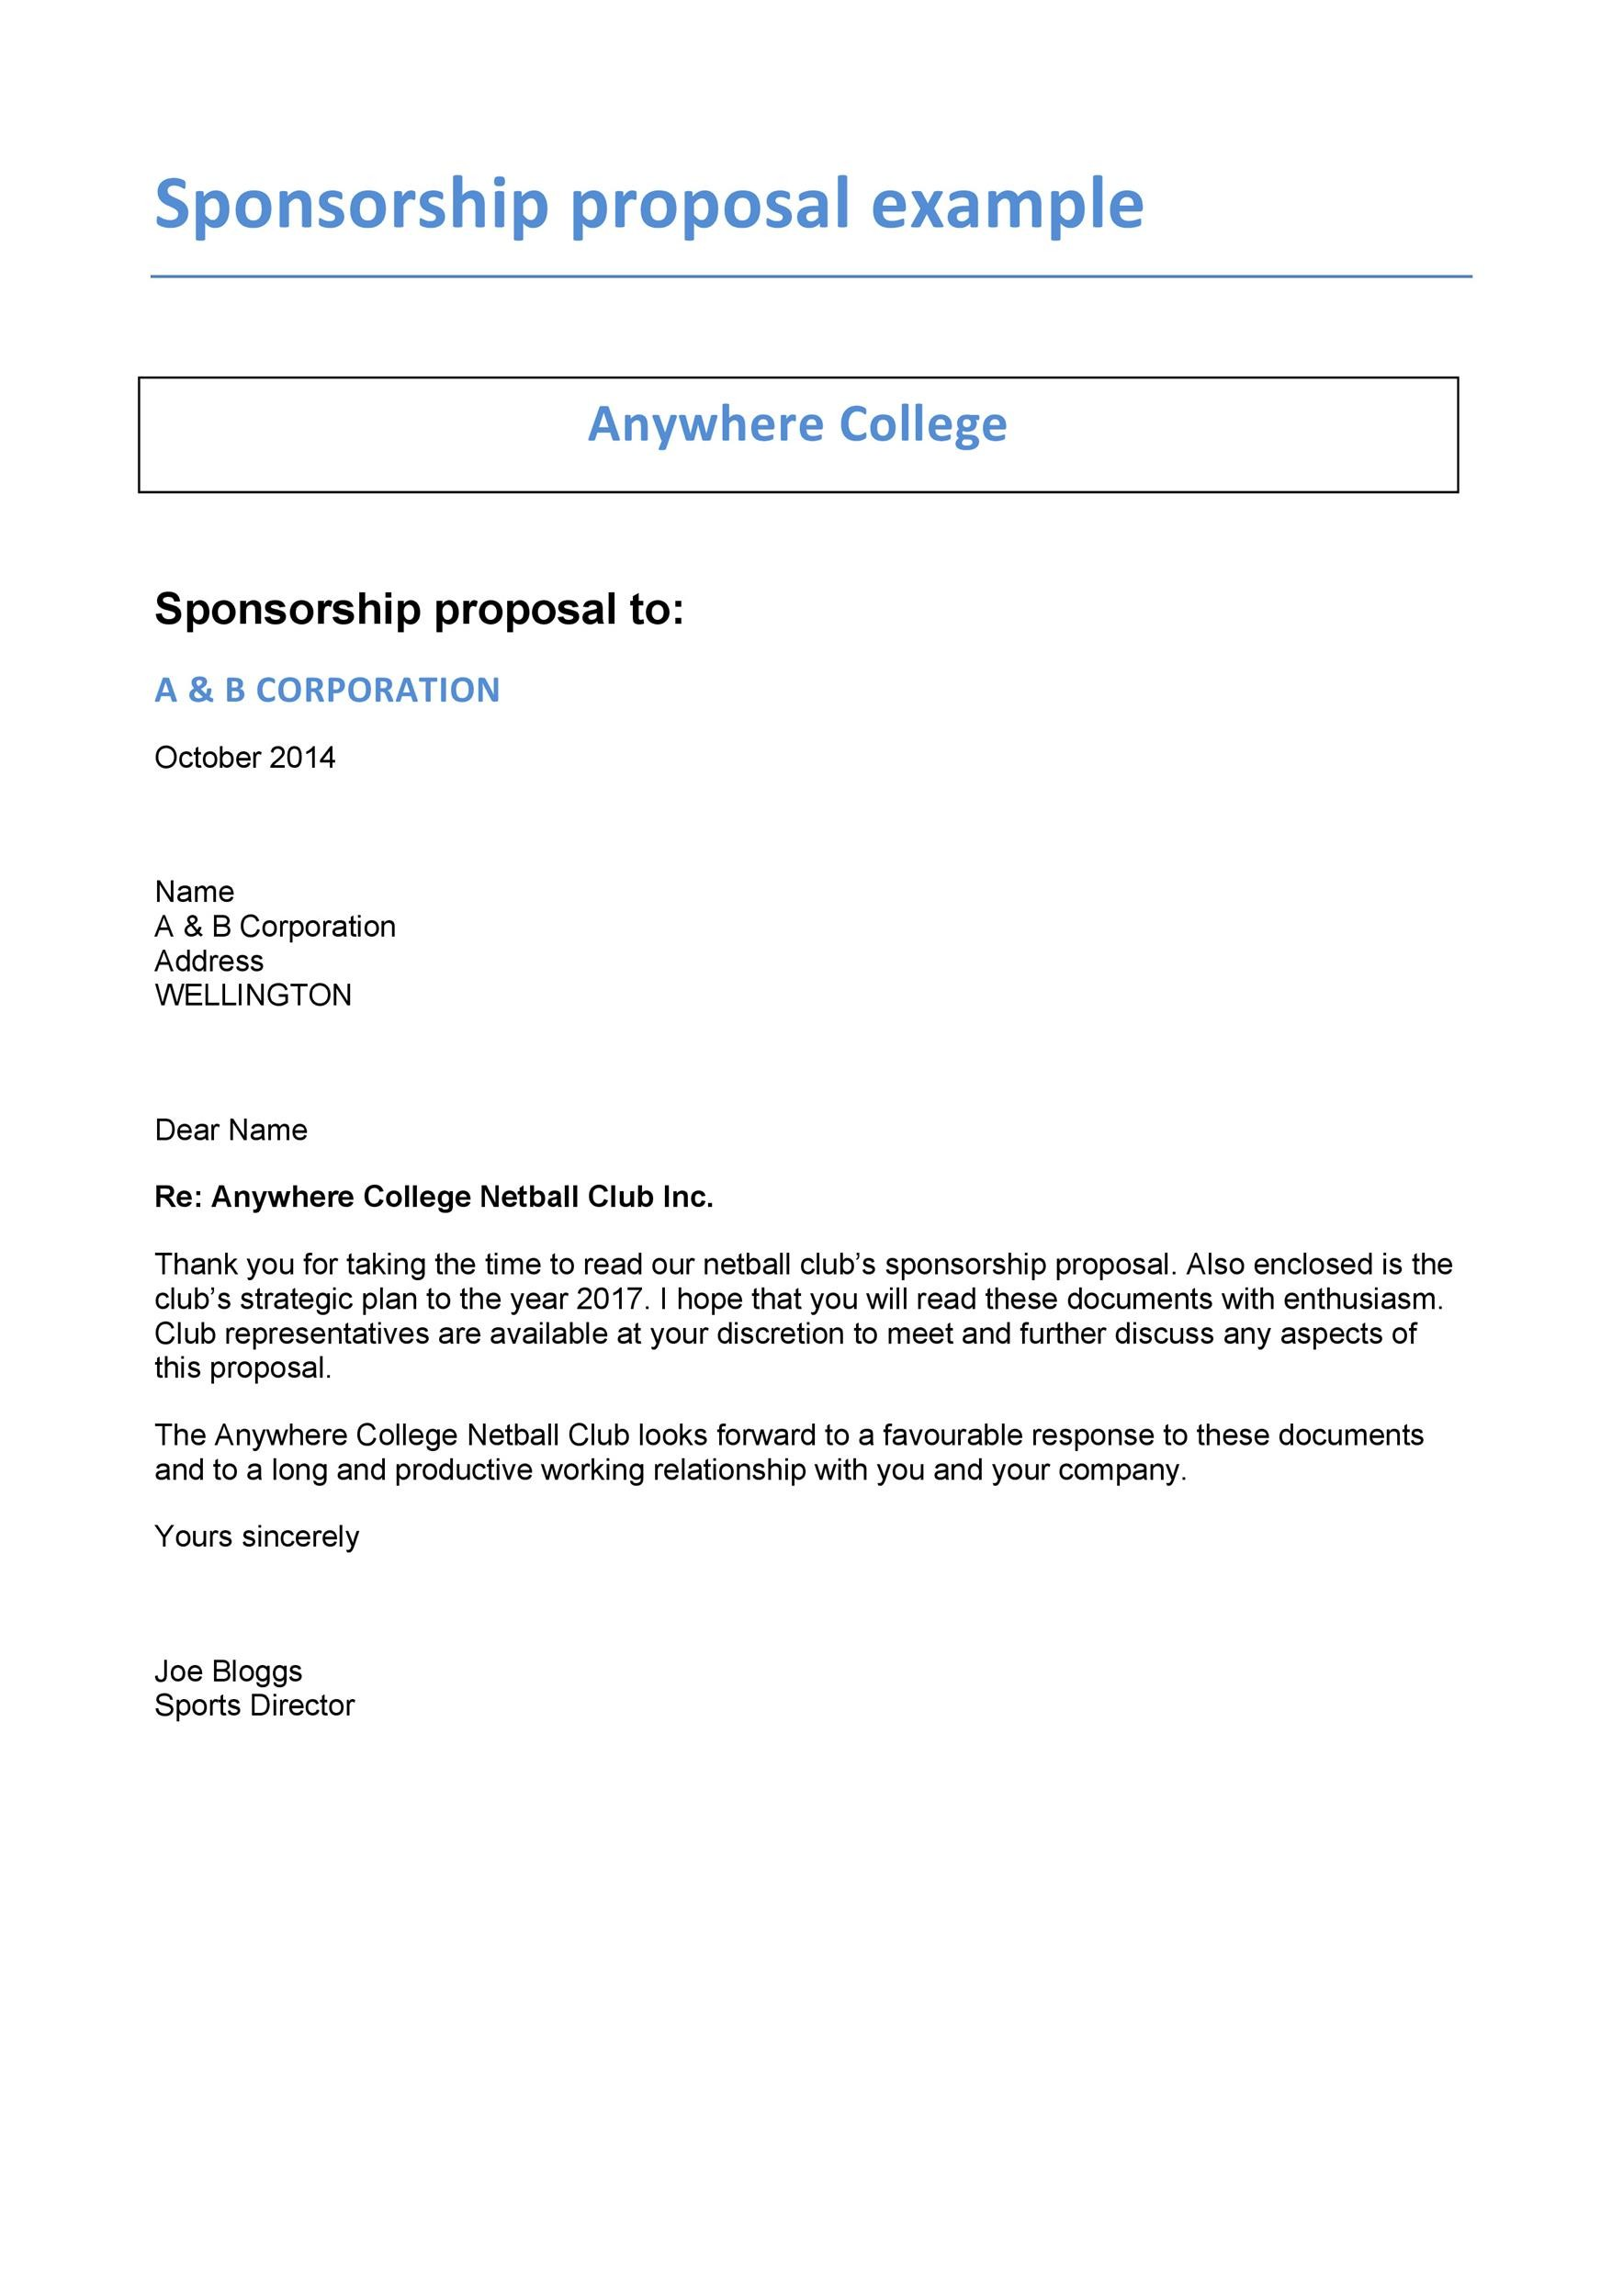 40 Sponsorship Letter Sponsorship Proposal Templates – Format of a Sponsorship Letter